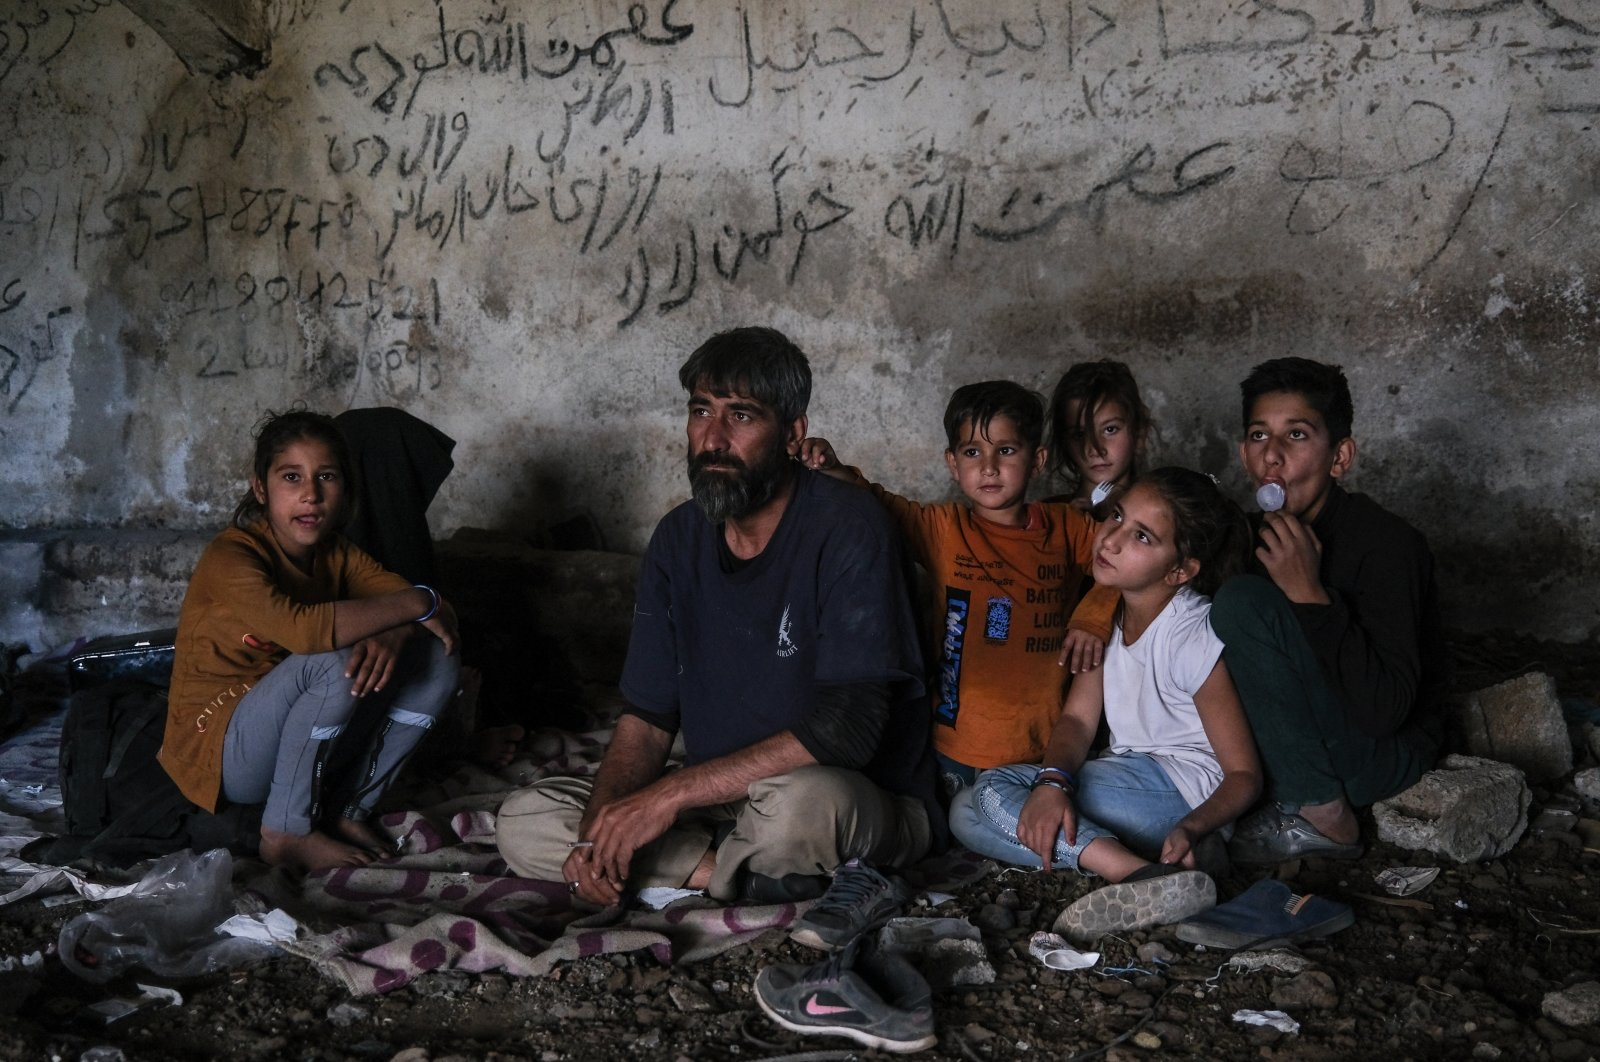 An Afghan family rests in an abandoned shepherd's house near the Turkish city of Van after crossing the Iran-Turkey border, 08 June 2021. (EPA Photo)